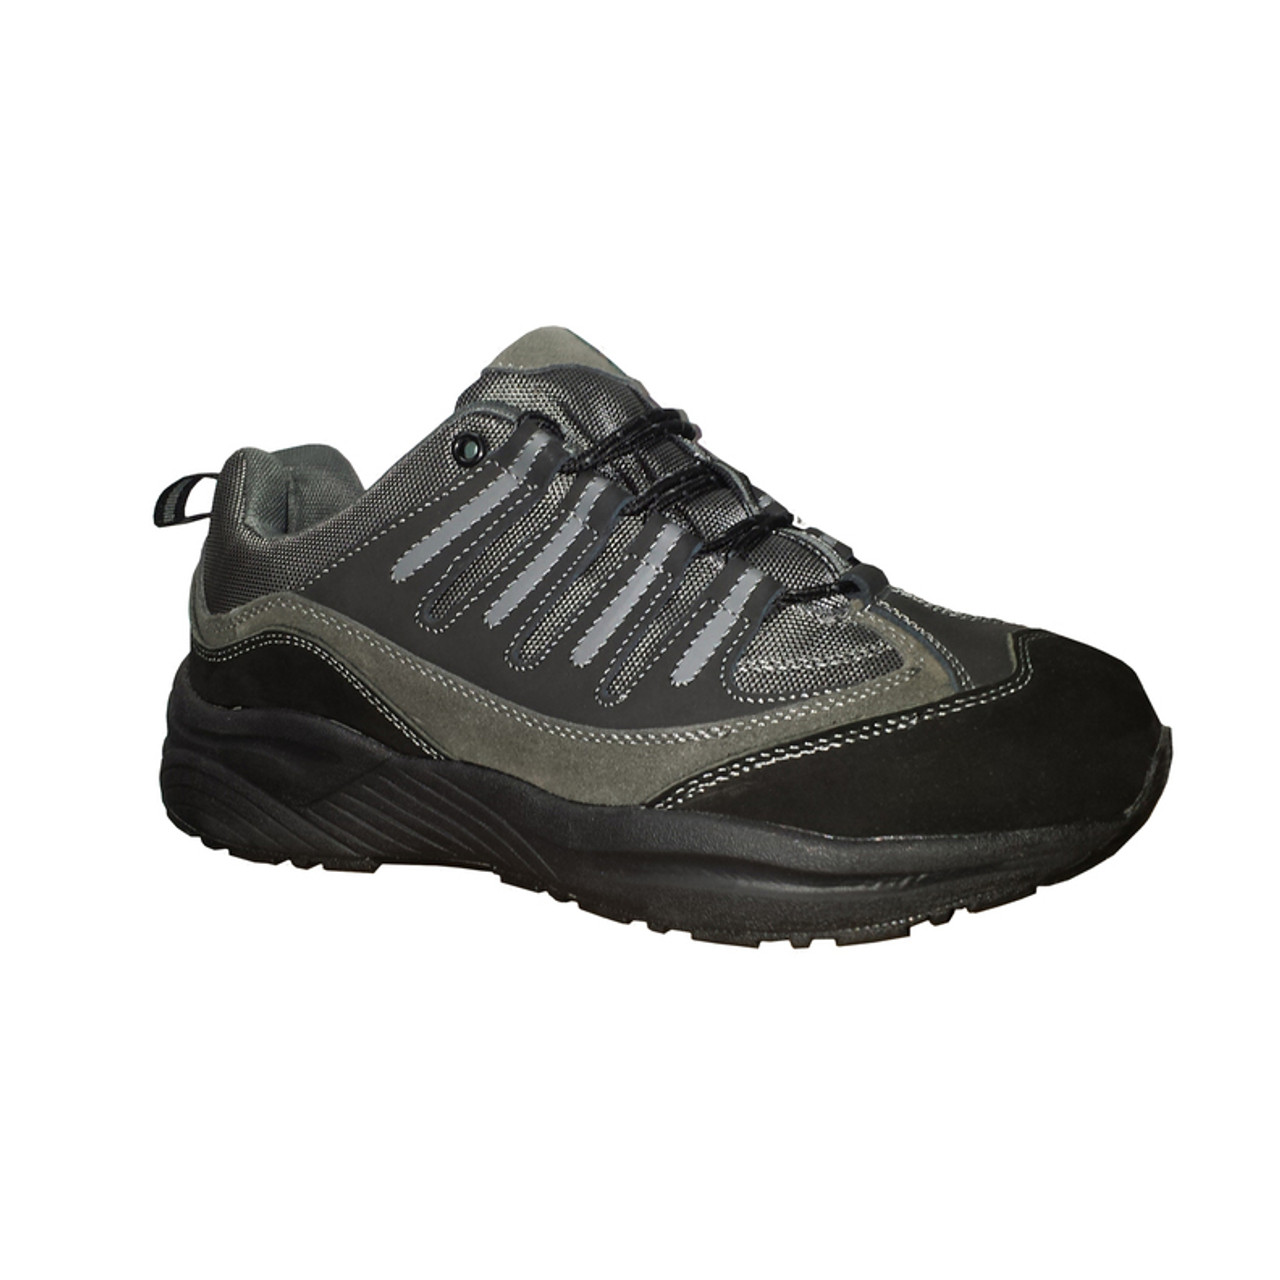 Men s Orthopedic Shoes For Hiking Black   Silver by Genext 495fa6572